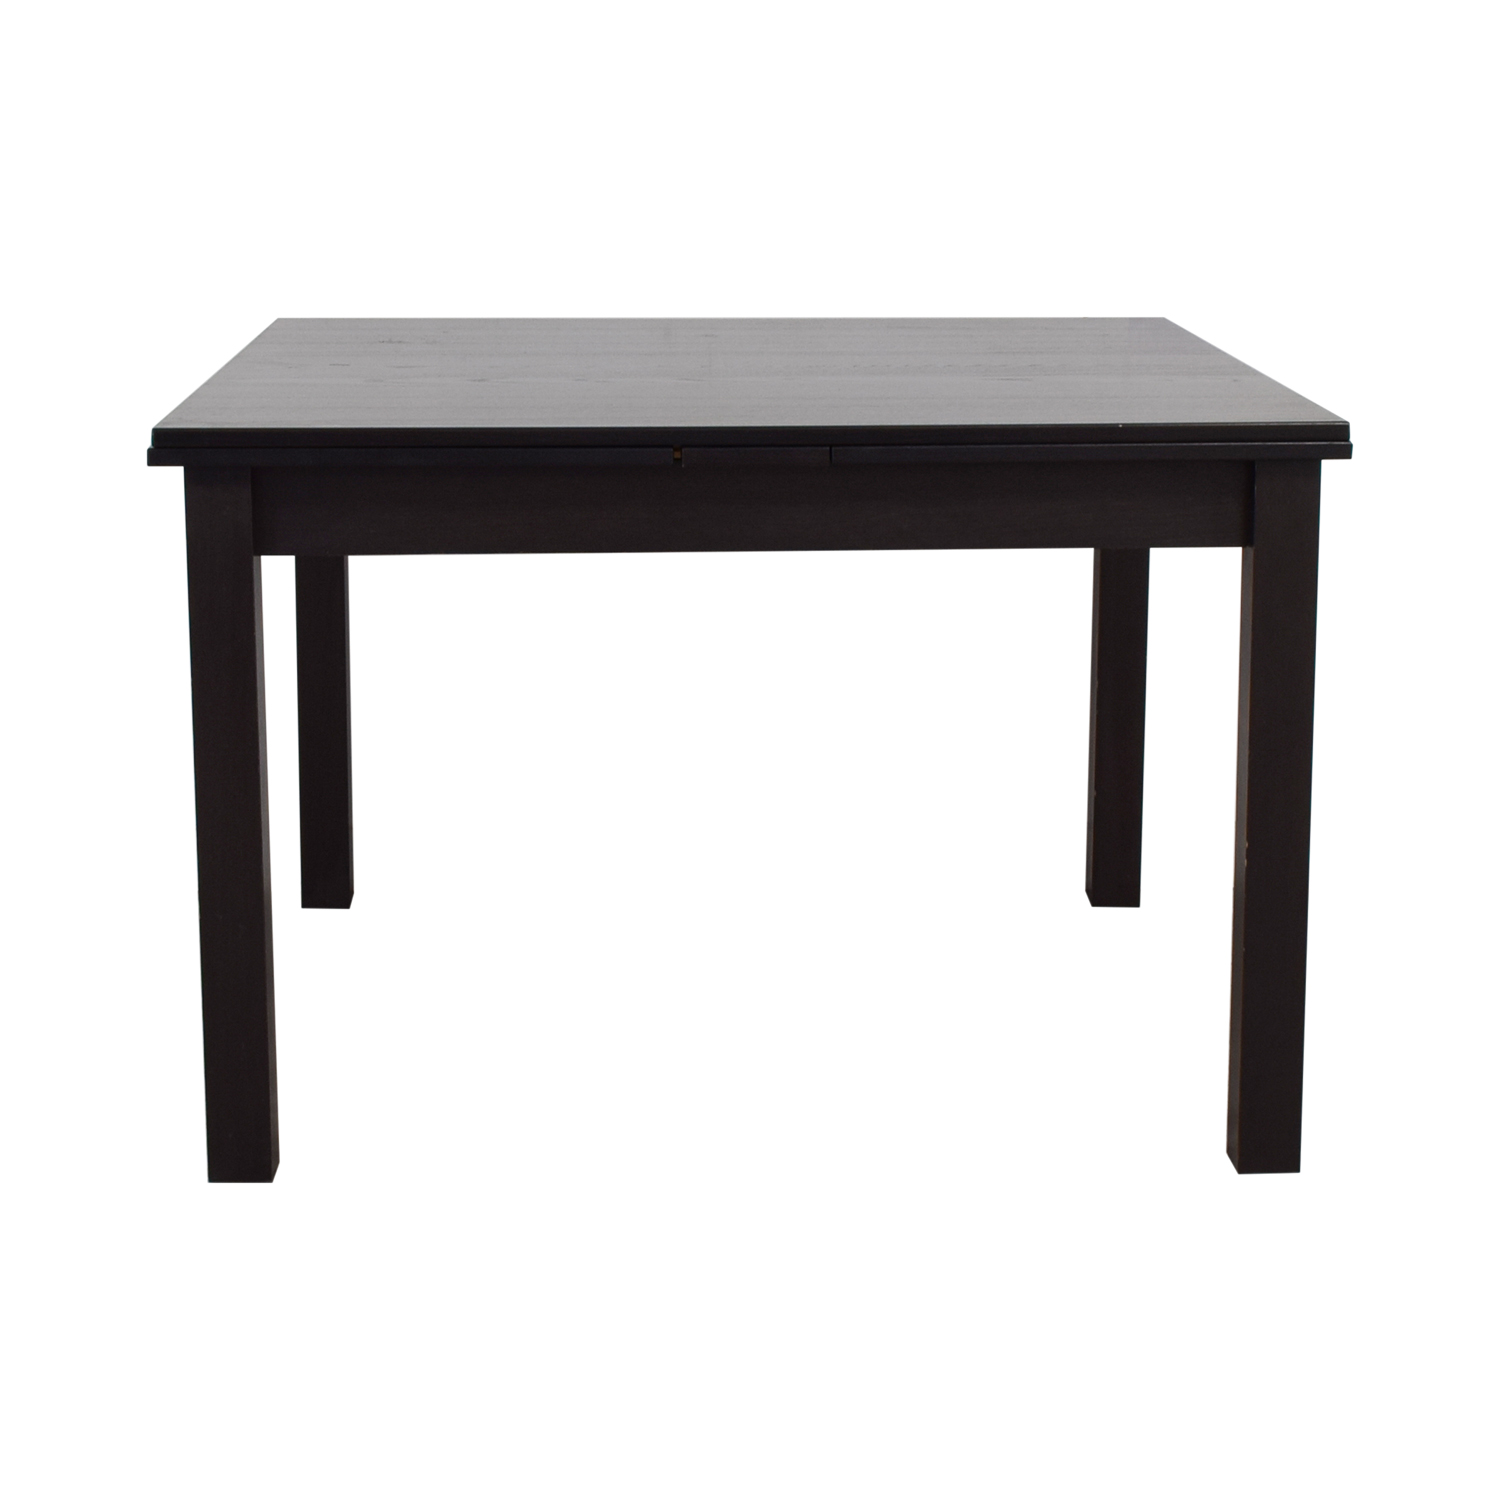 Crate & Barrel Crate & Barrel Expandable Wood Dining Table dimensions